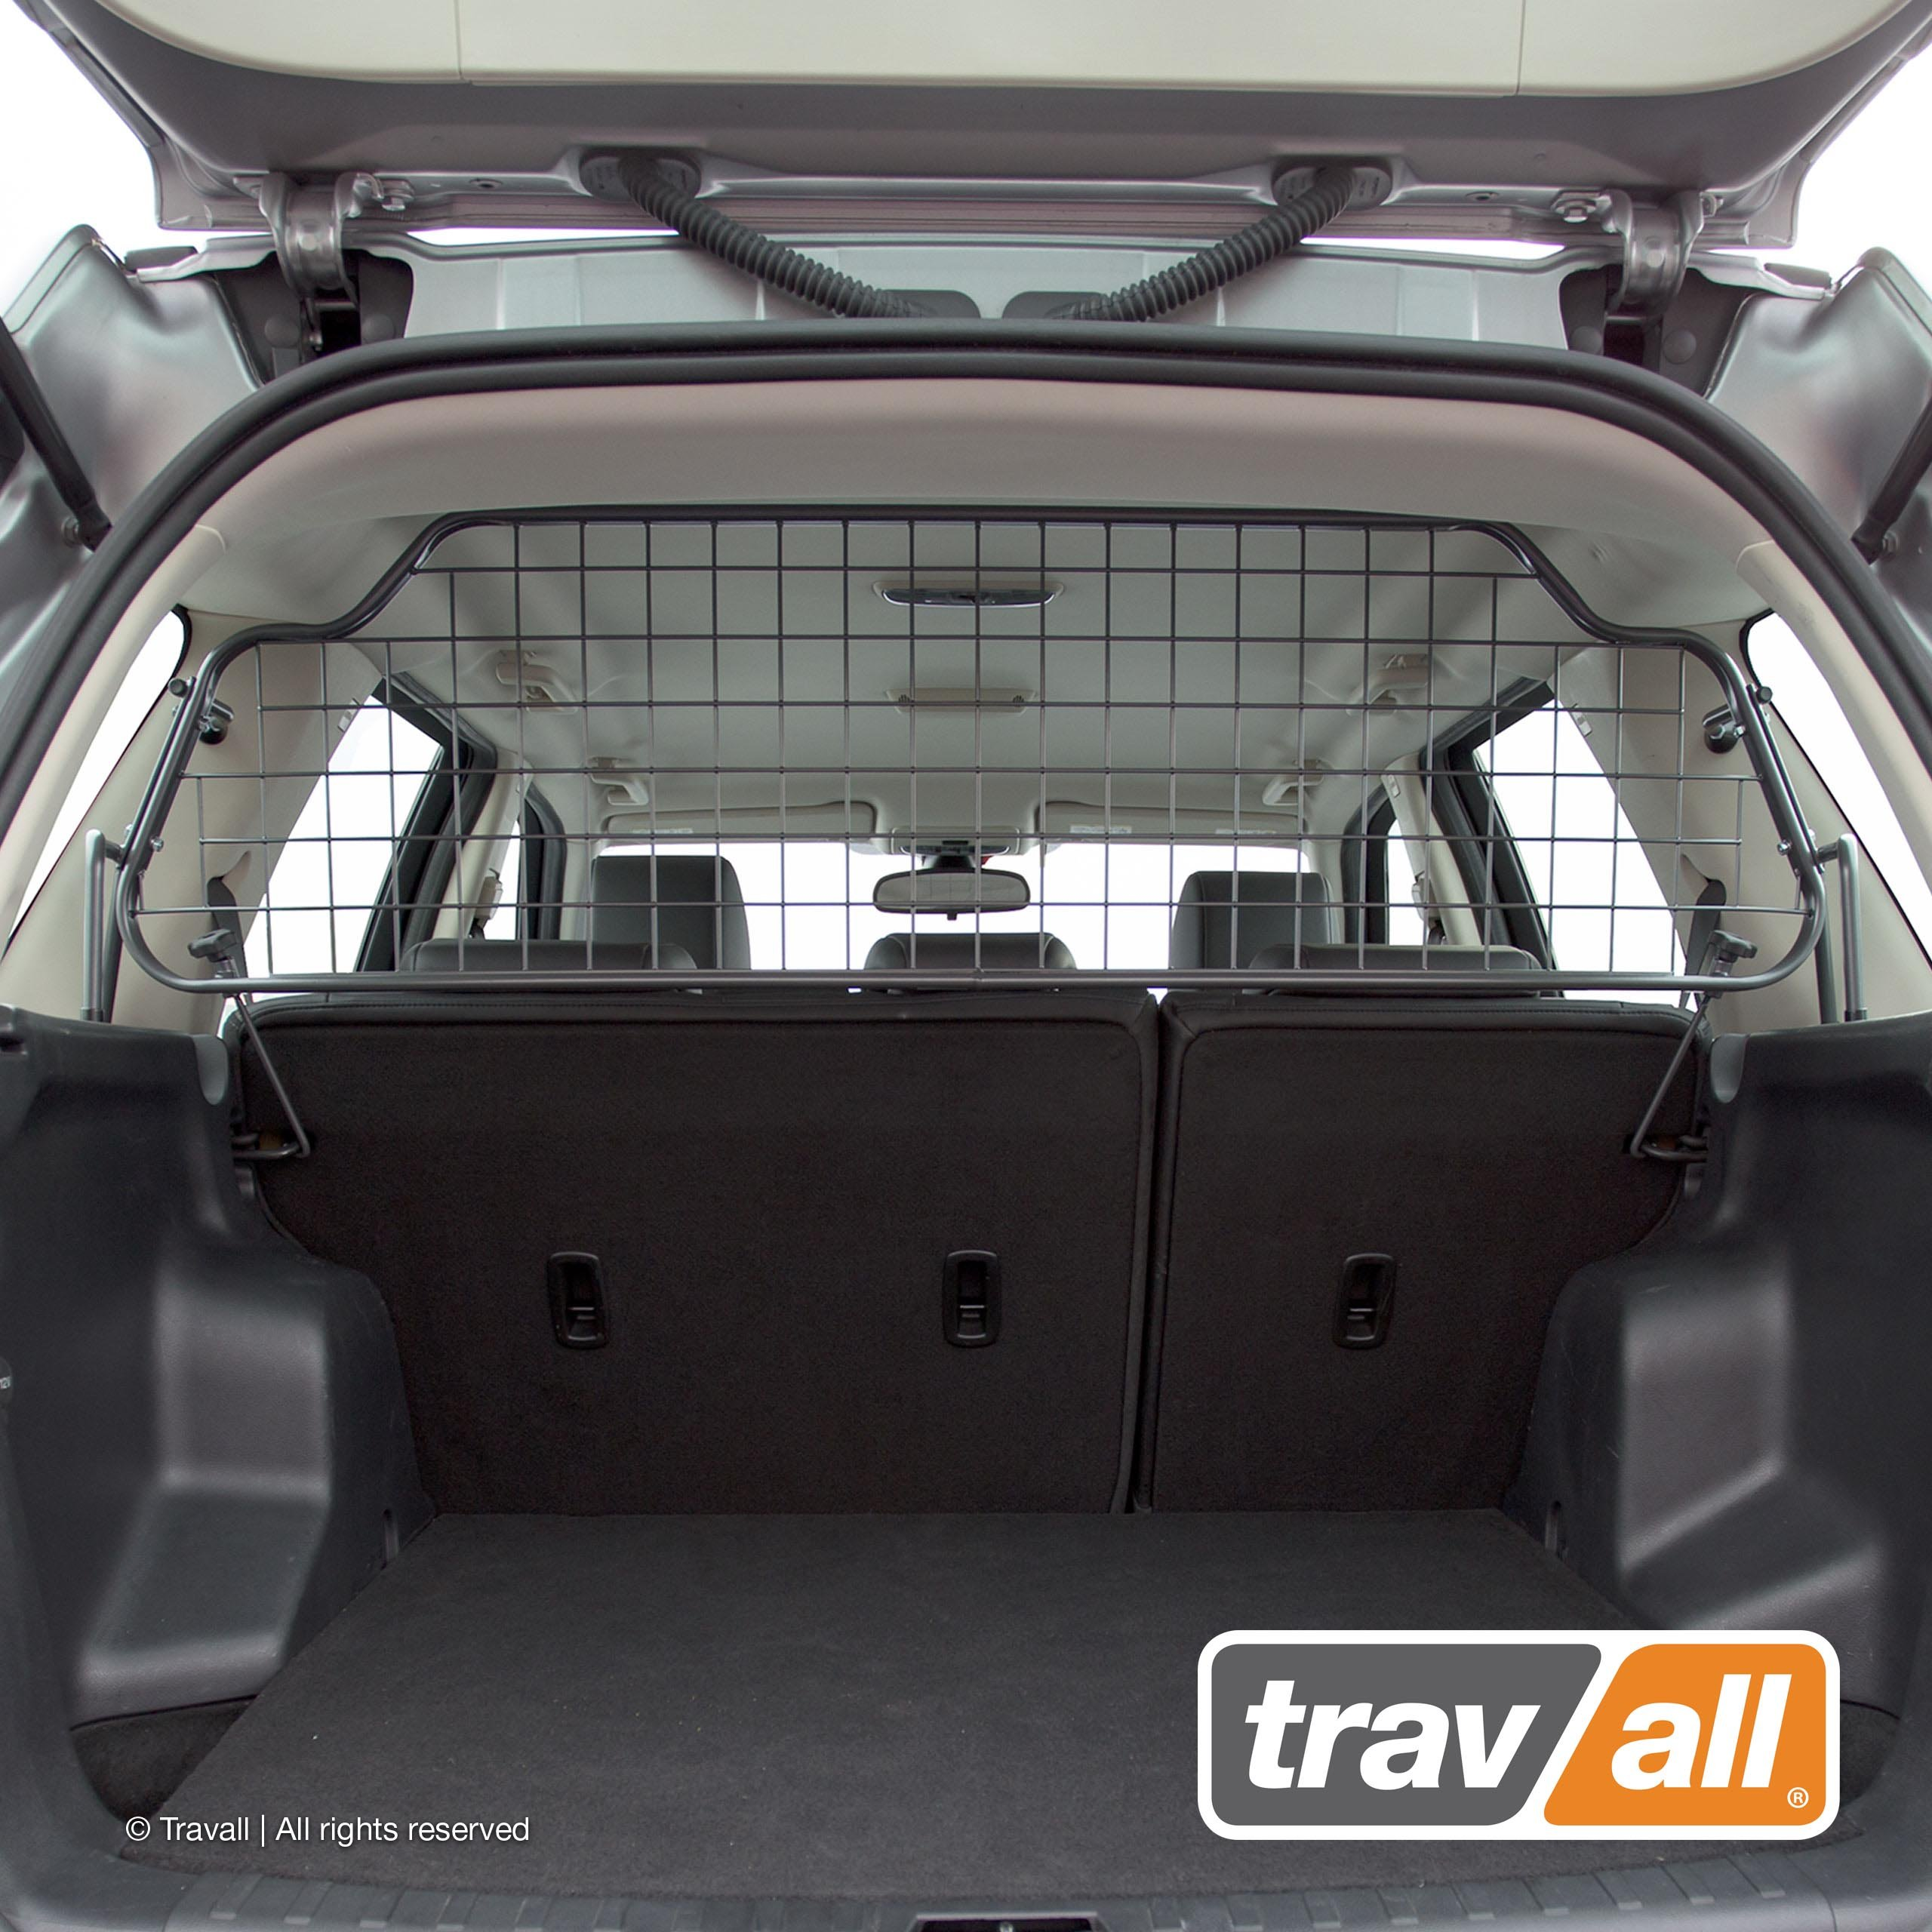 Travall Guard TDG1063 – Vehicle-Specific Dog Guard